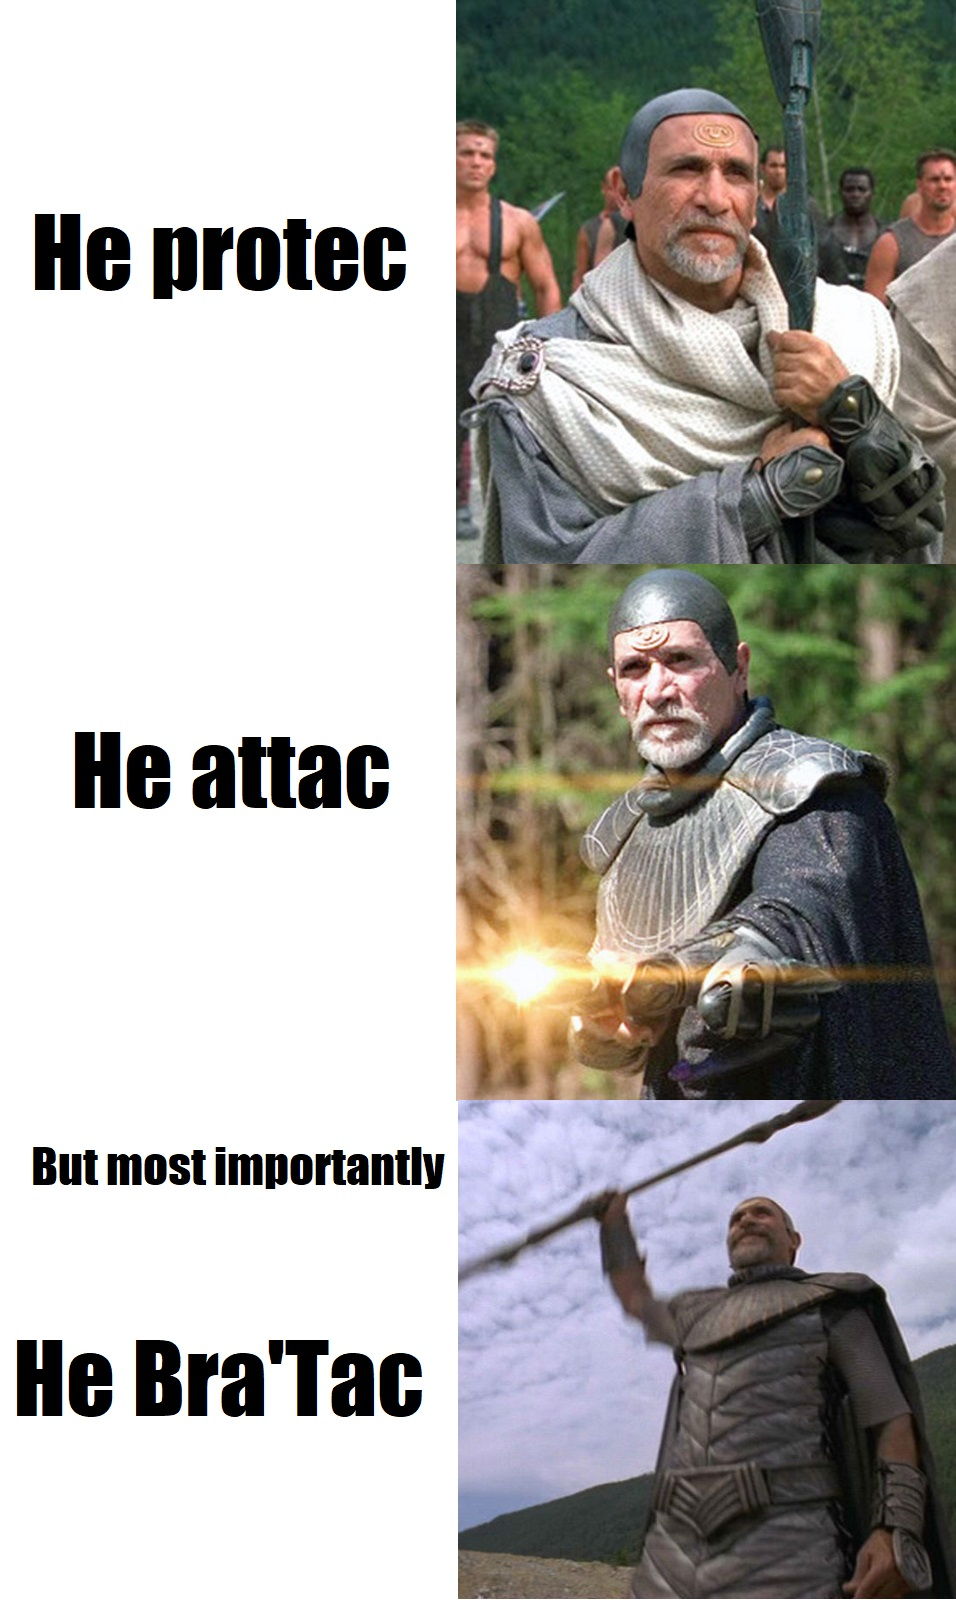 2a6 he protec but he also attac image gallery know your meme